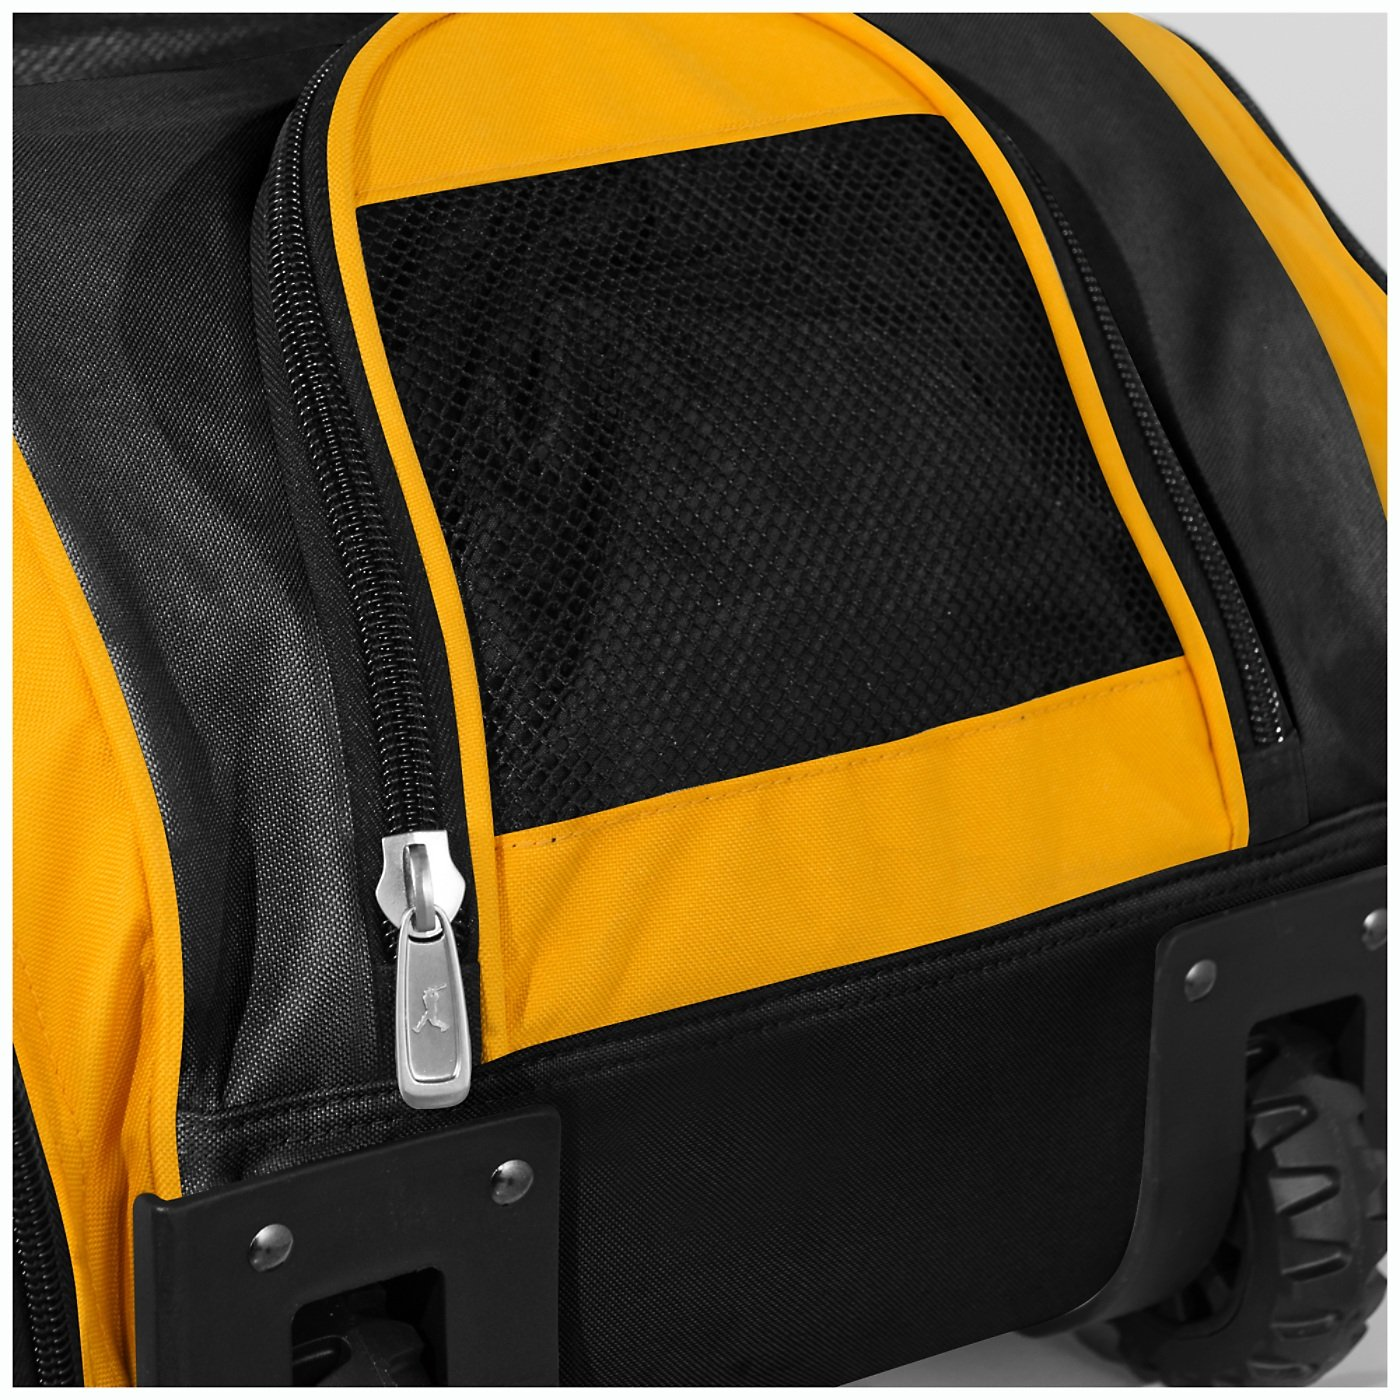 Boombah Beast Baseball/Softball Bat Bag - 40'' x 14'' x 13'' - Black/Gold - Holds 8 Bats, Glove & Shoe Compartments by Boombah (Image #4)